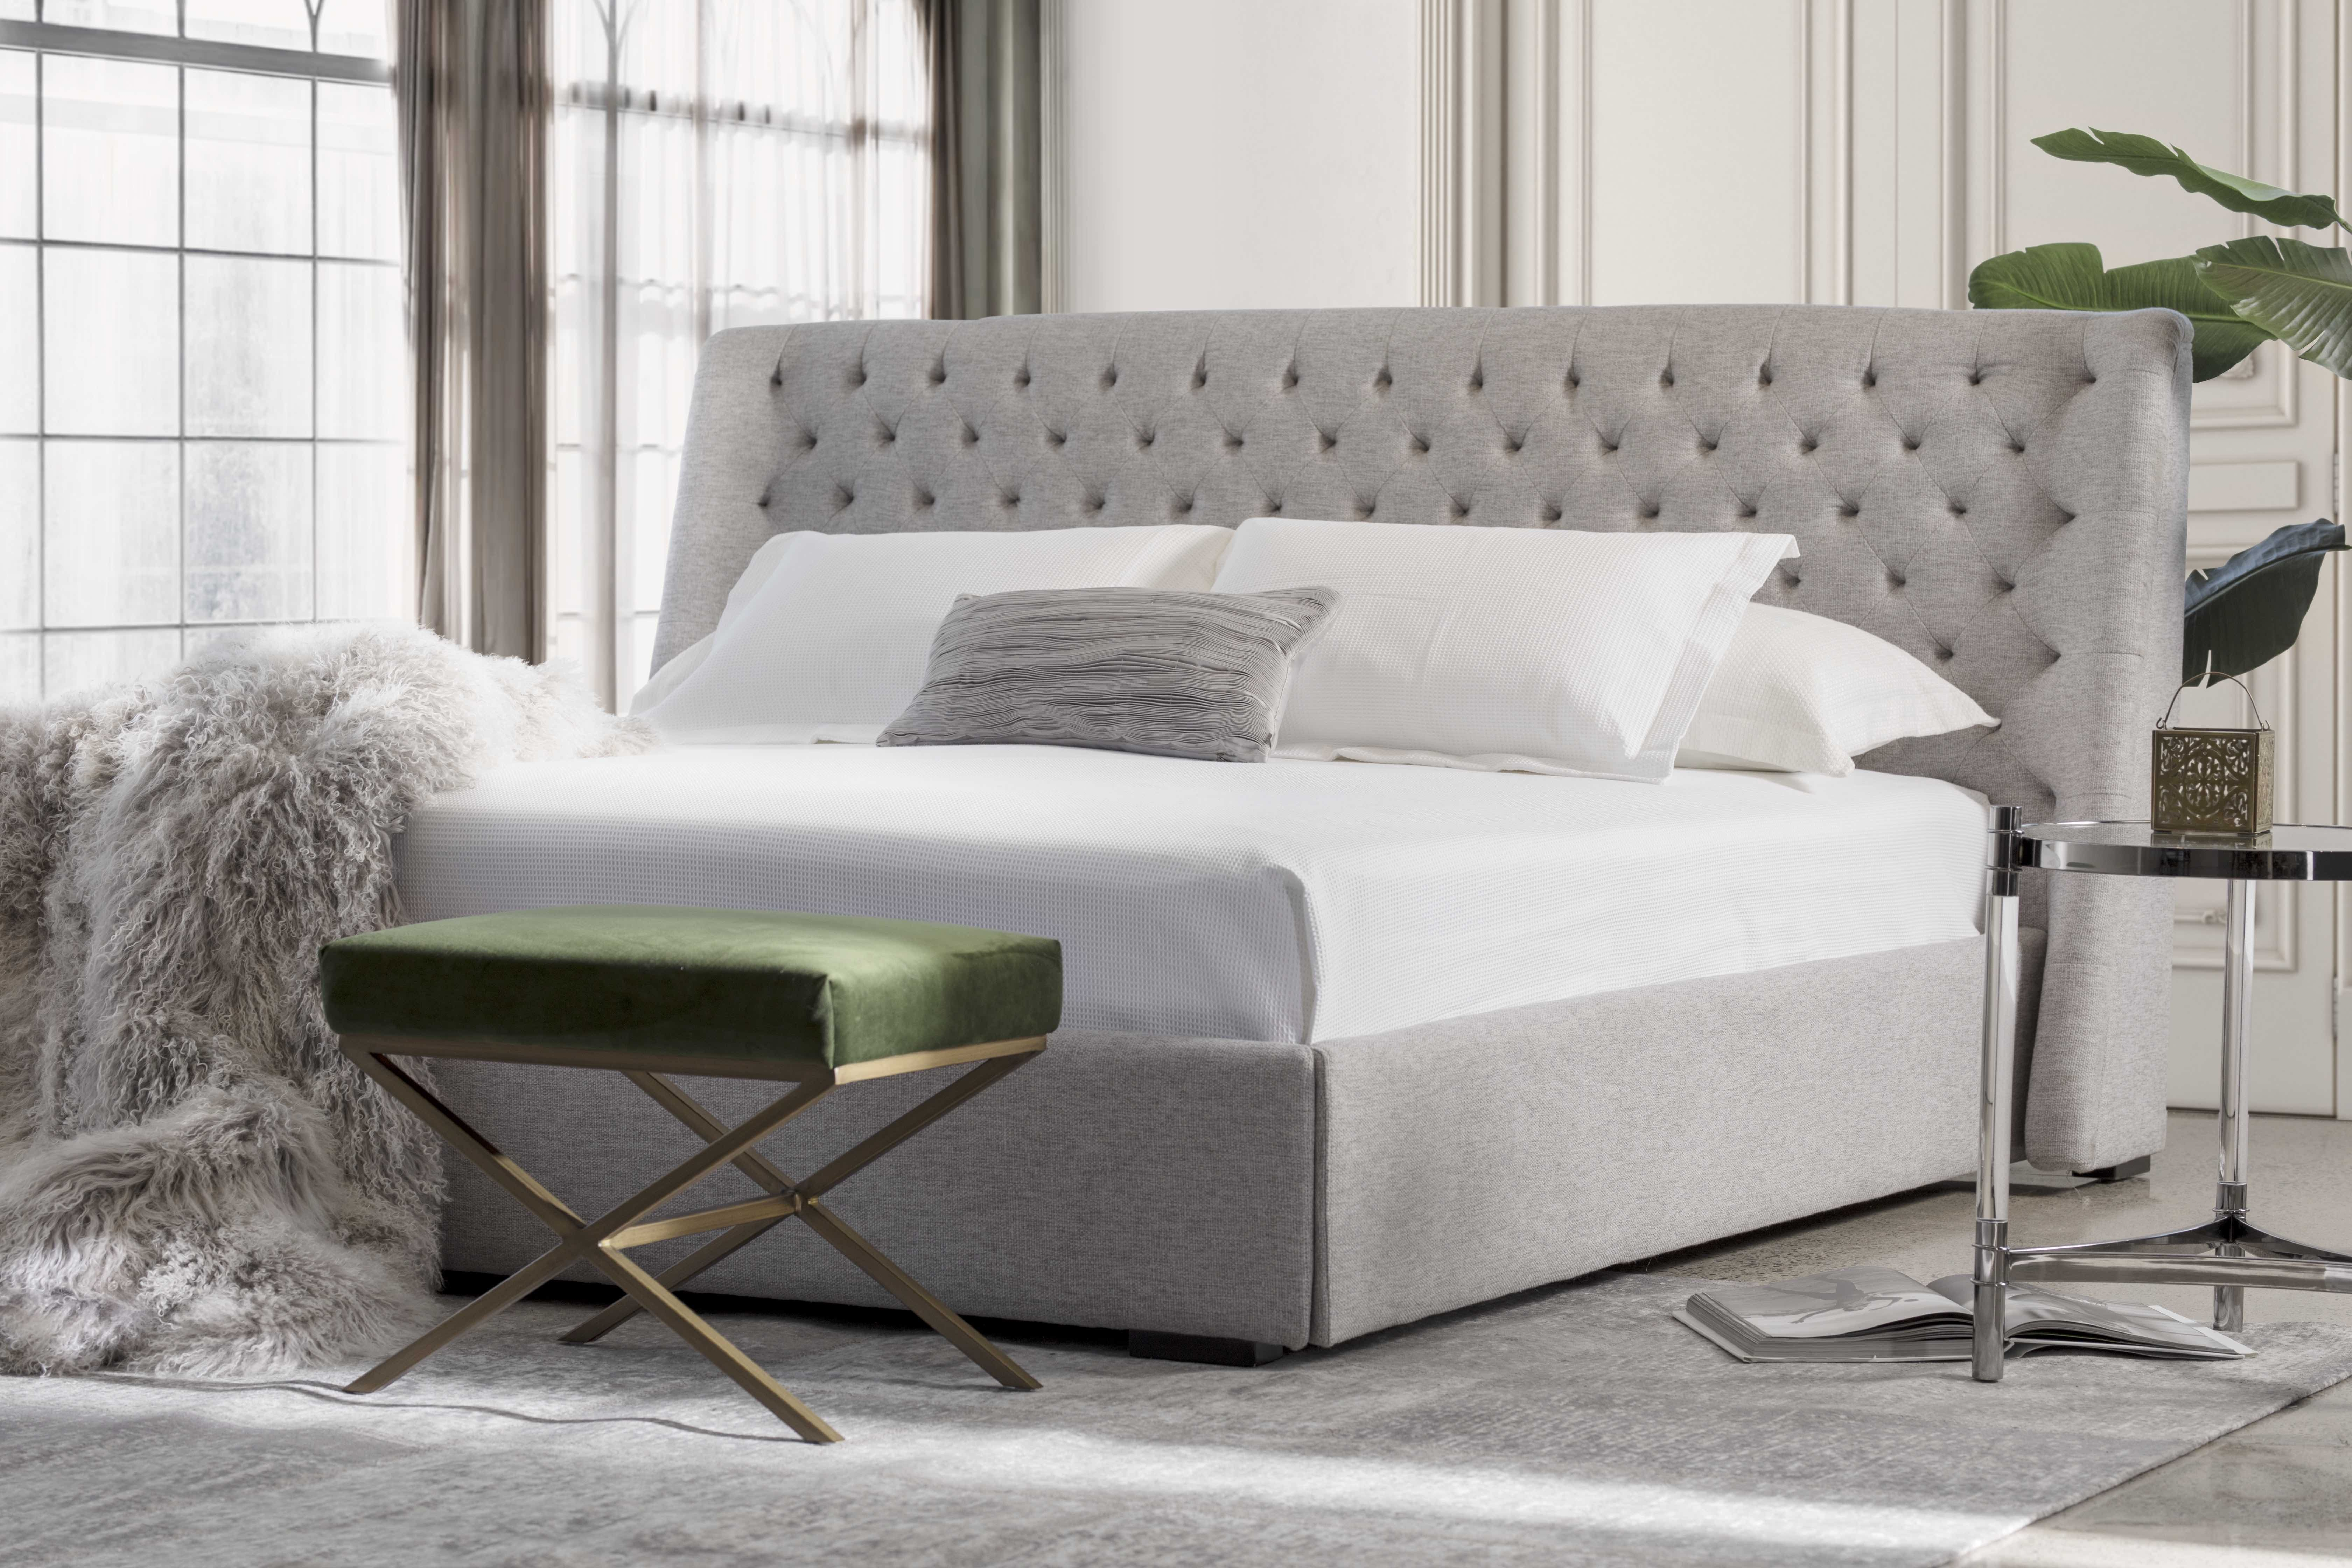 Jacob Lit Upholstered Beds Bed Tufted Headboard